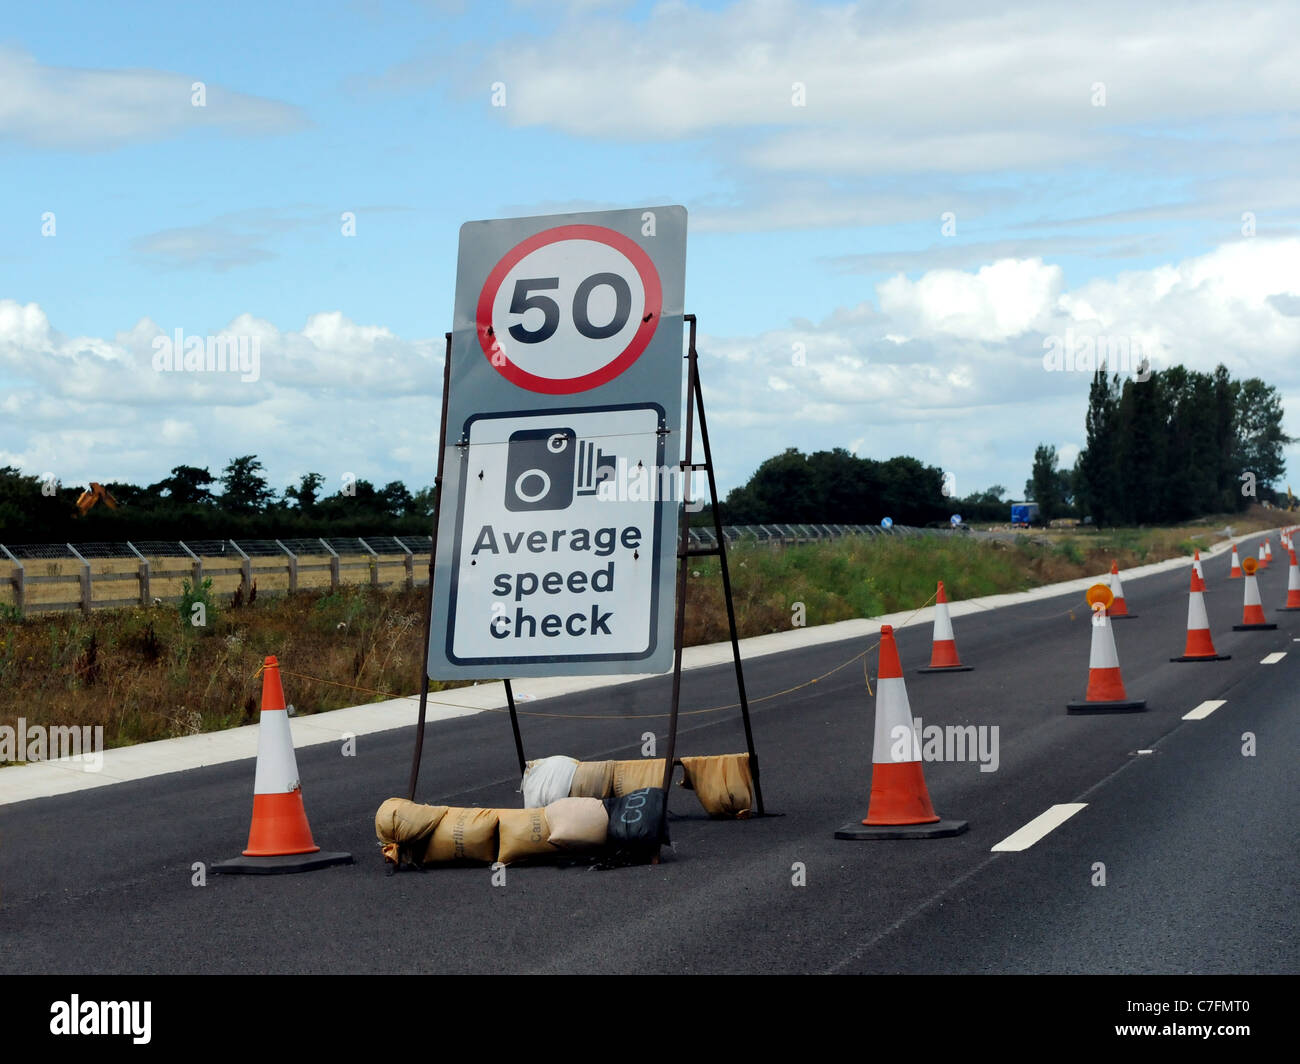 A motorway sign that warns of a speed camera and an average speed check of 50mph - Stock Image